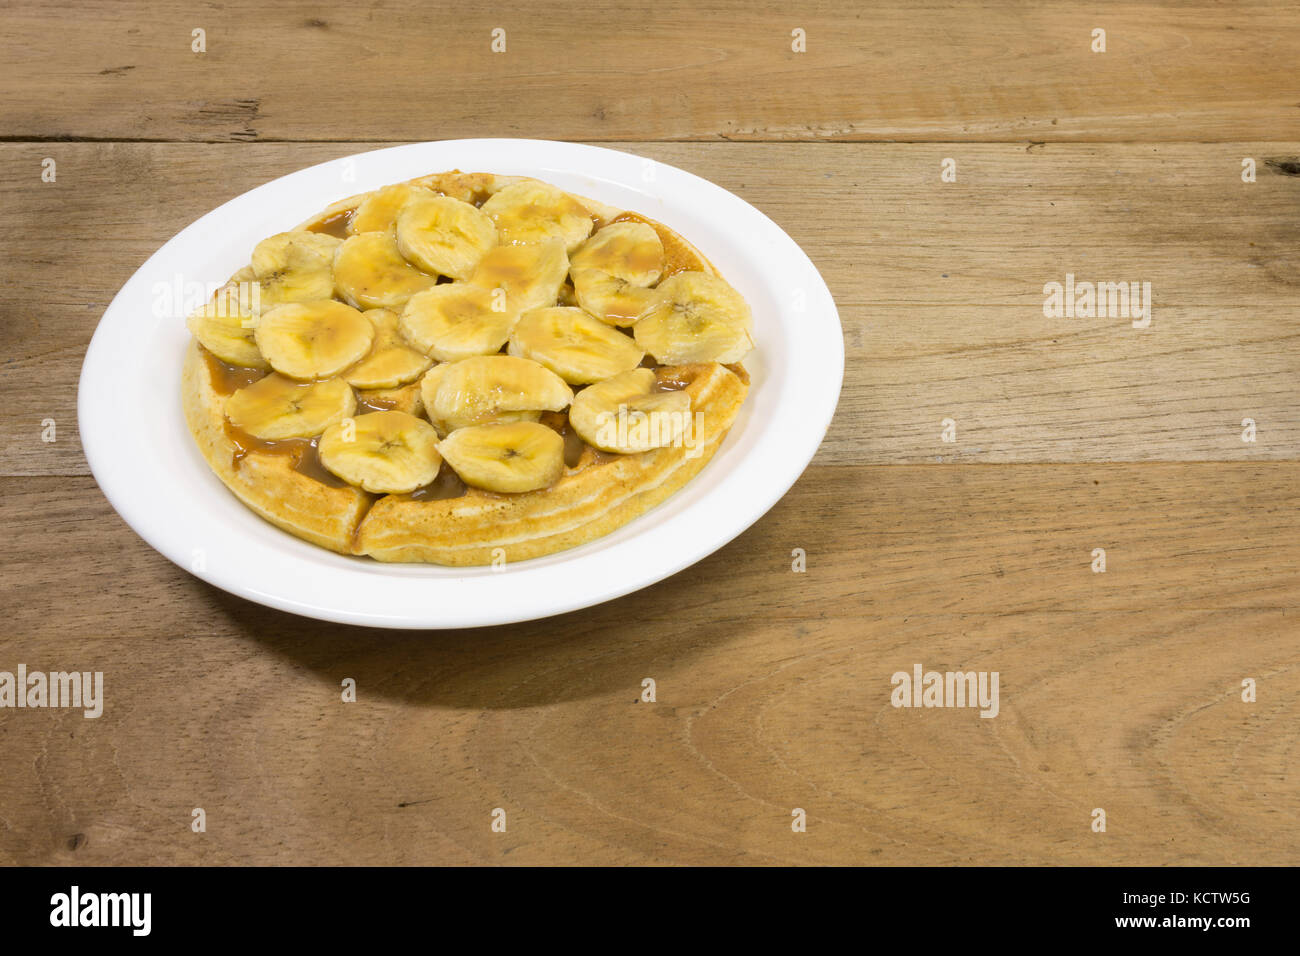 Waffle with milk caramel spread (Spanish: Dulce de leche) and banana slices on white plate, on wooden background - Stock Image